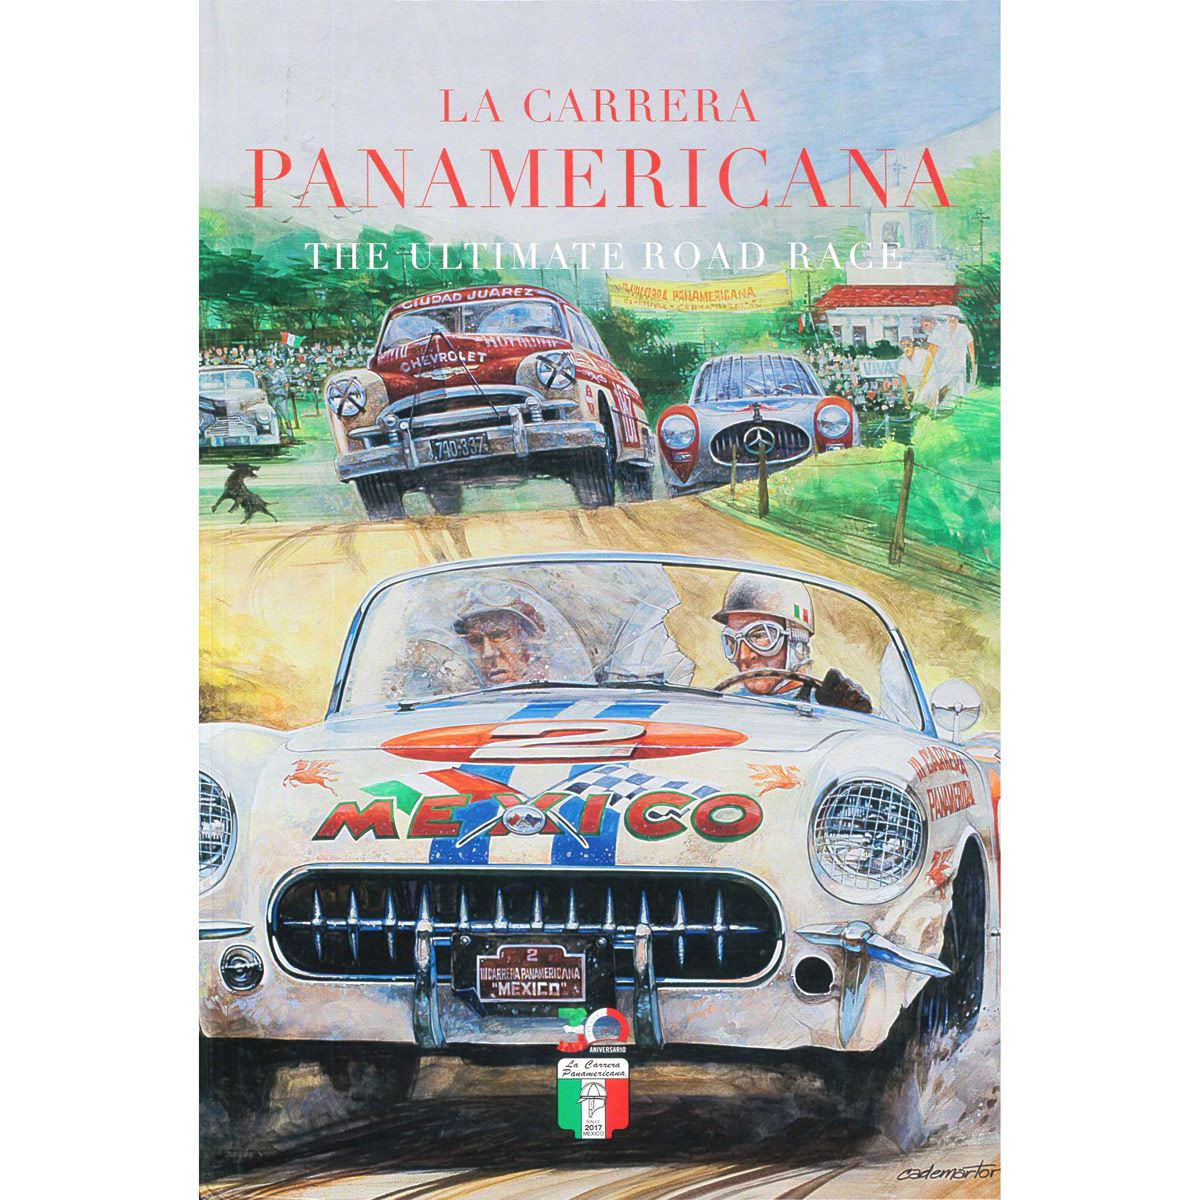 La Carrera Panamericana, The Ultimate Road Race